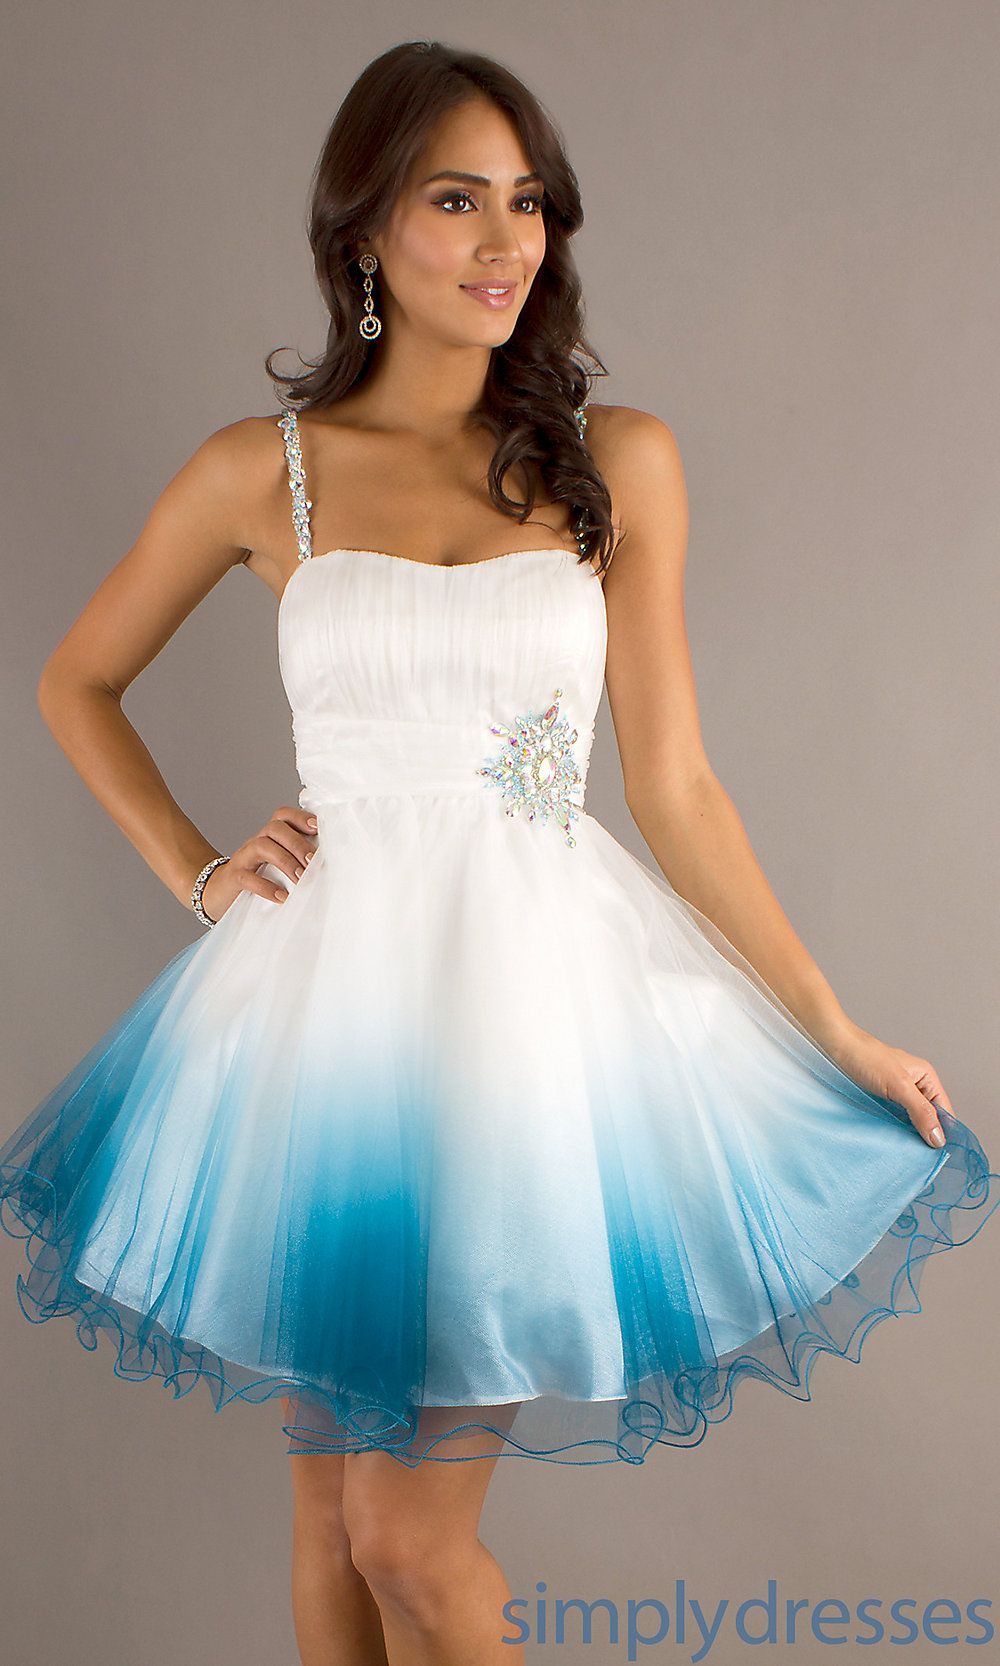 Short Spaghetti Strap Prom Dress, Party Dresses - Simply Dresses ...